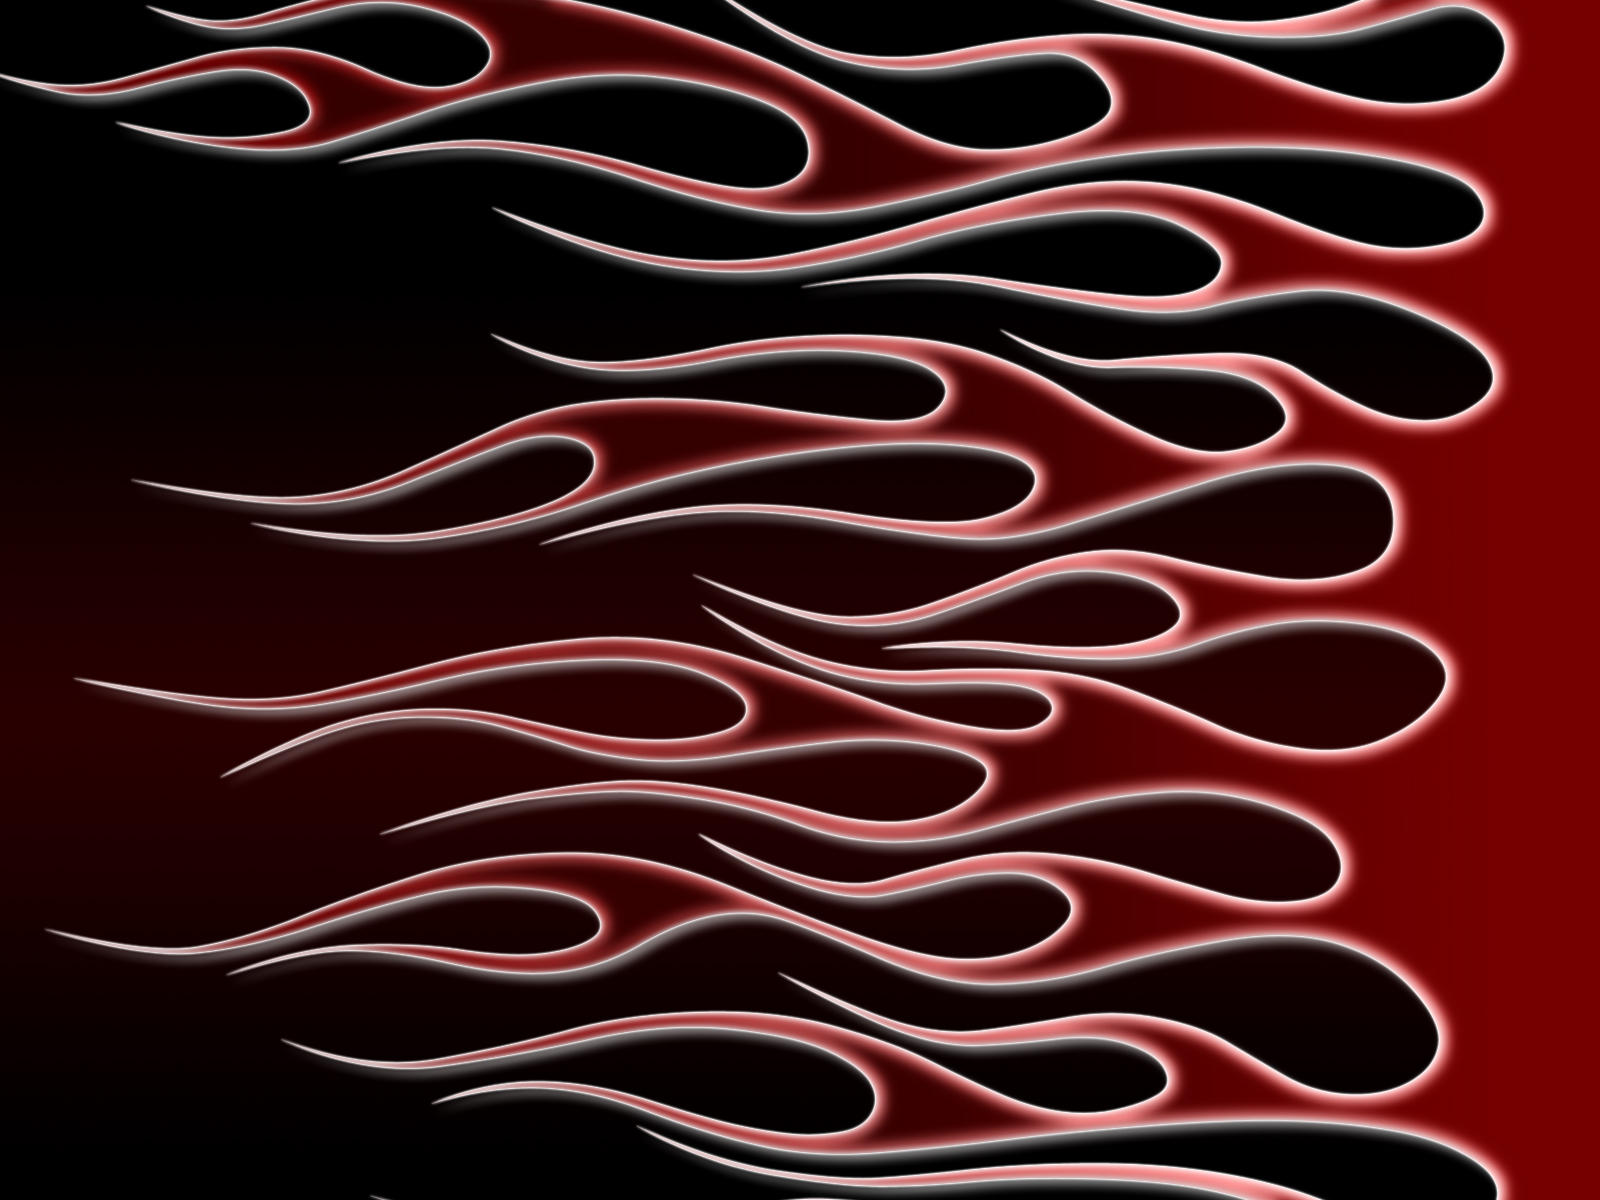 flames - red on black by jbensch